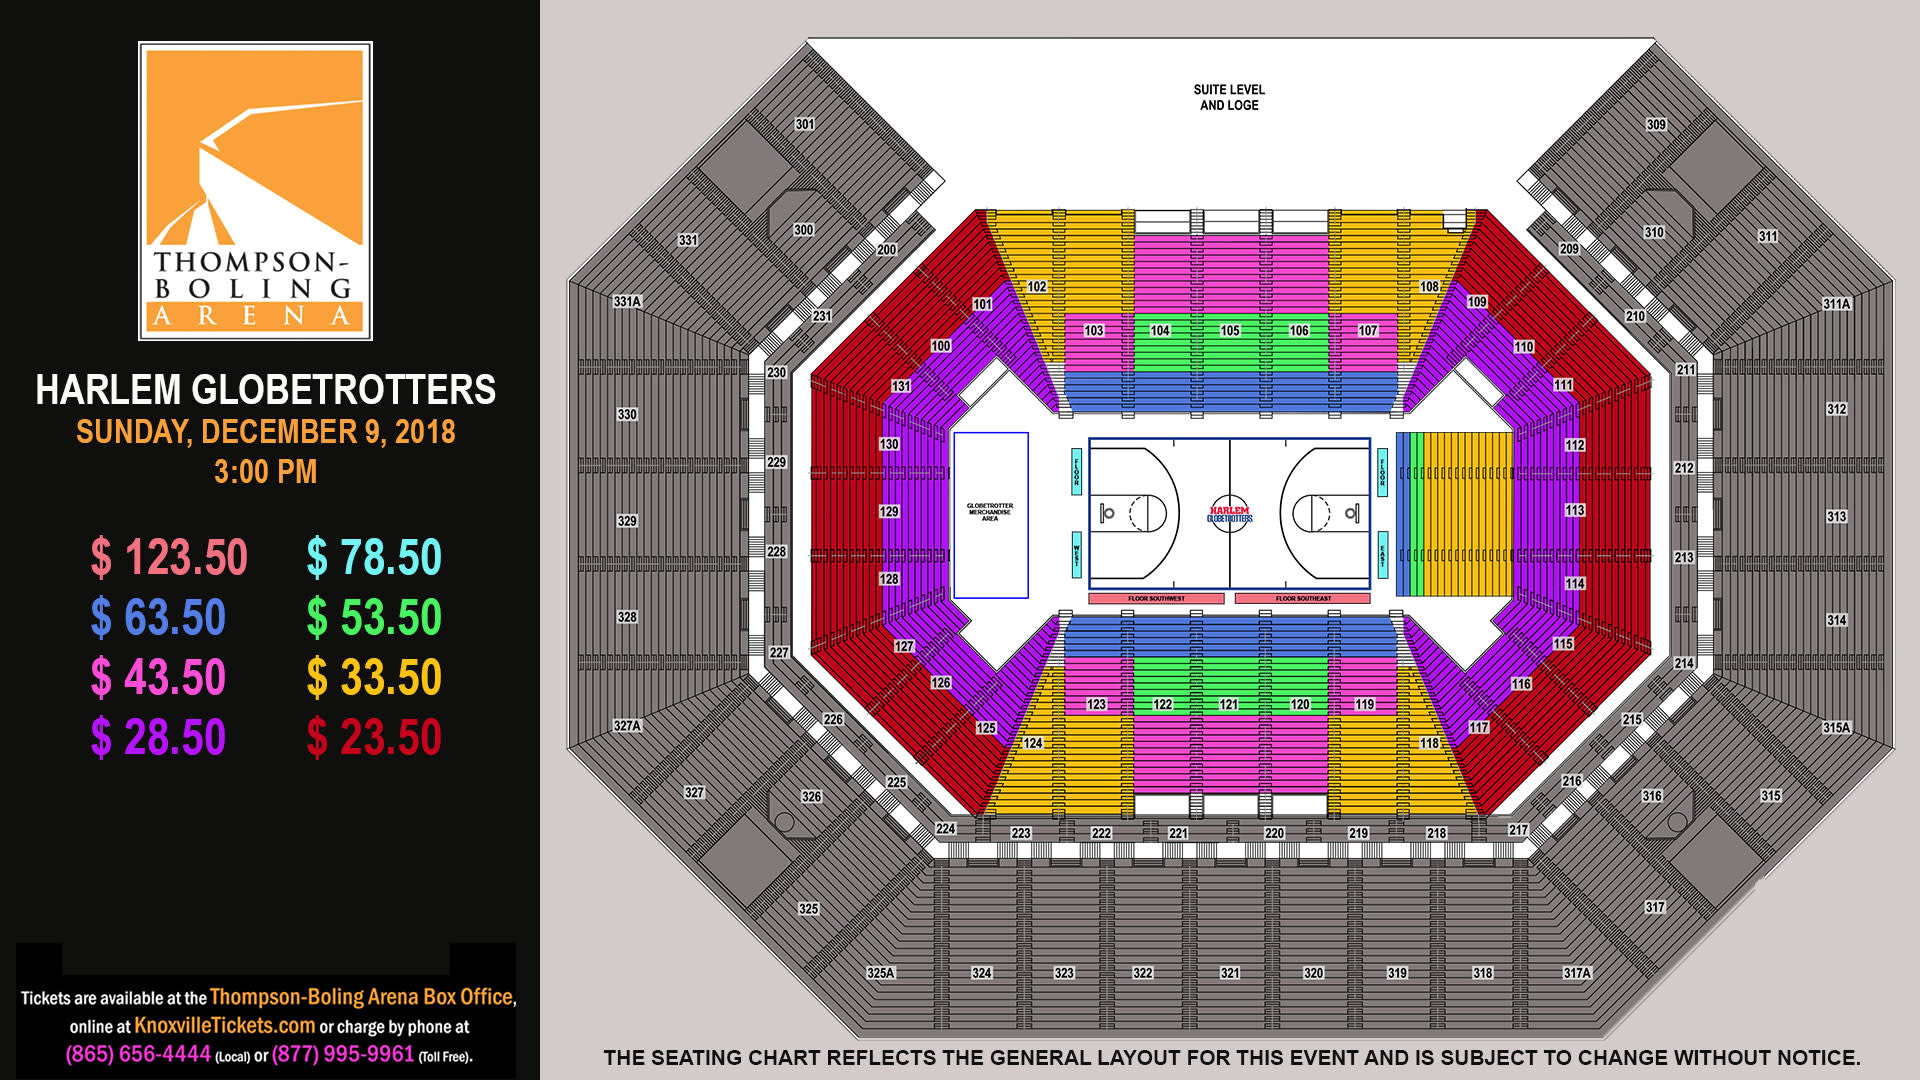 Harlem Globetrotters 2018 Seating Map